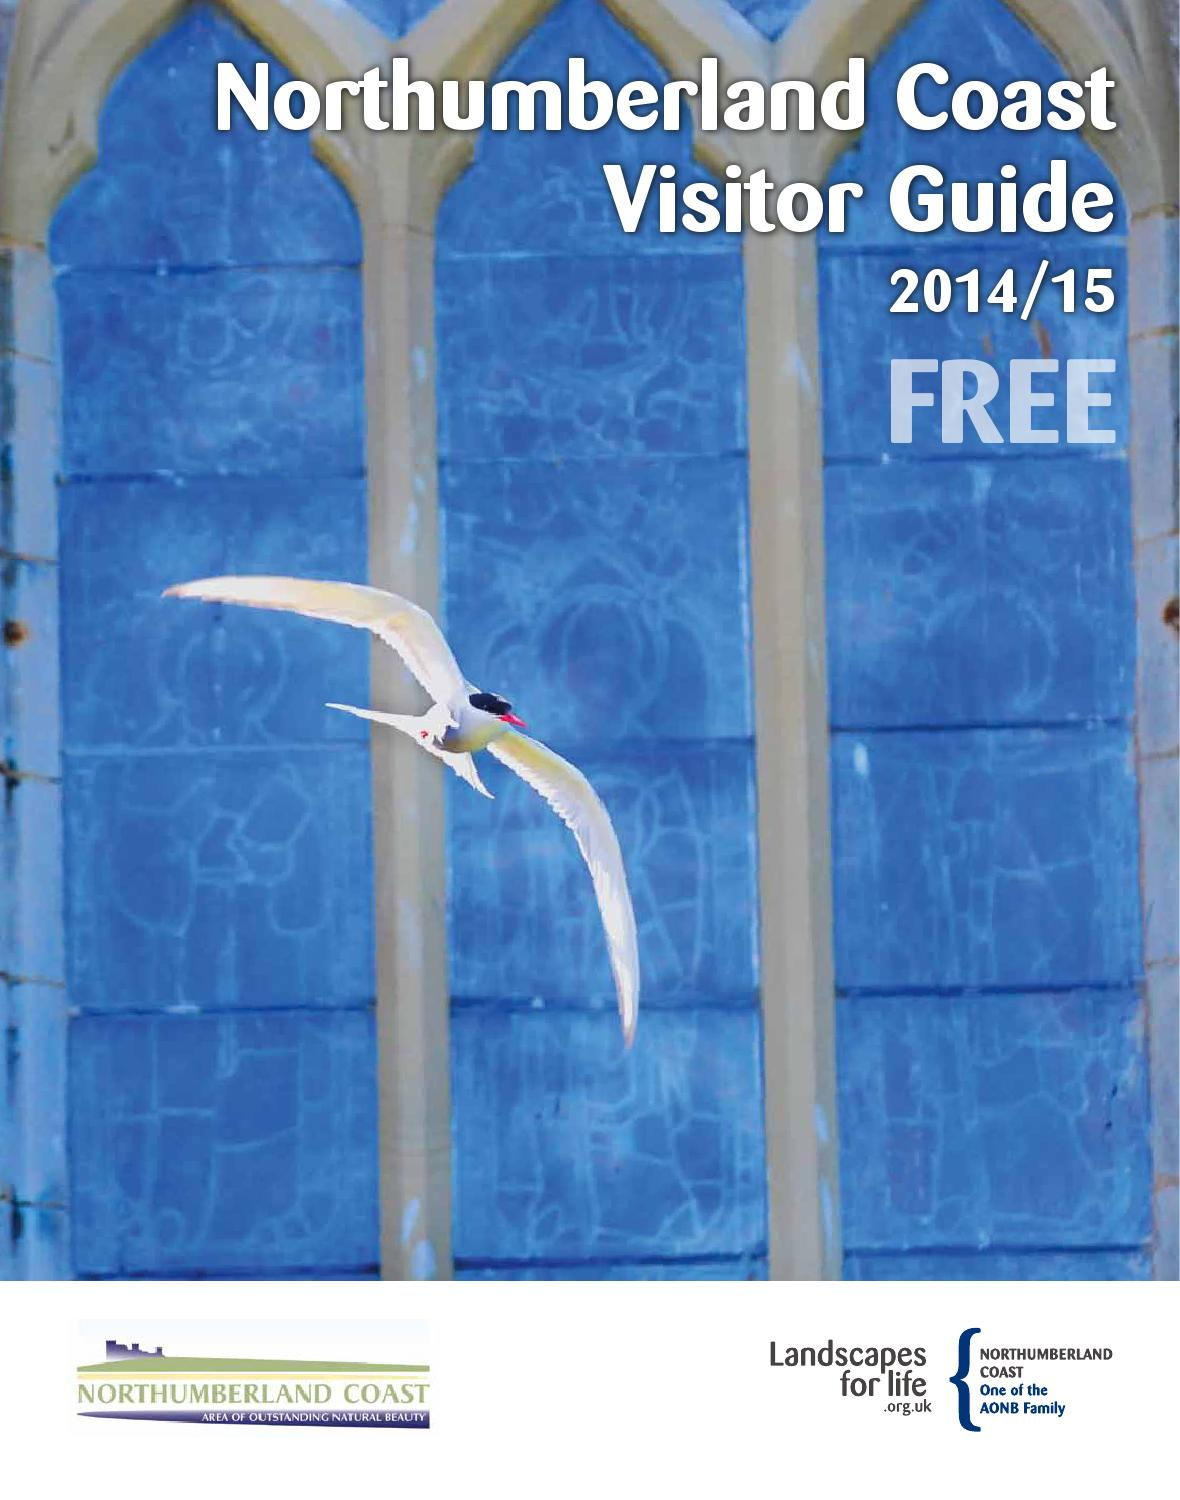 Northumberland coast visitor guide 2014 15 by Northumberland